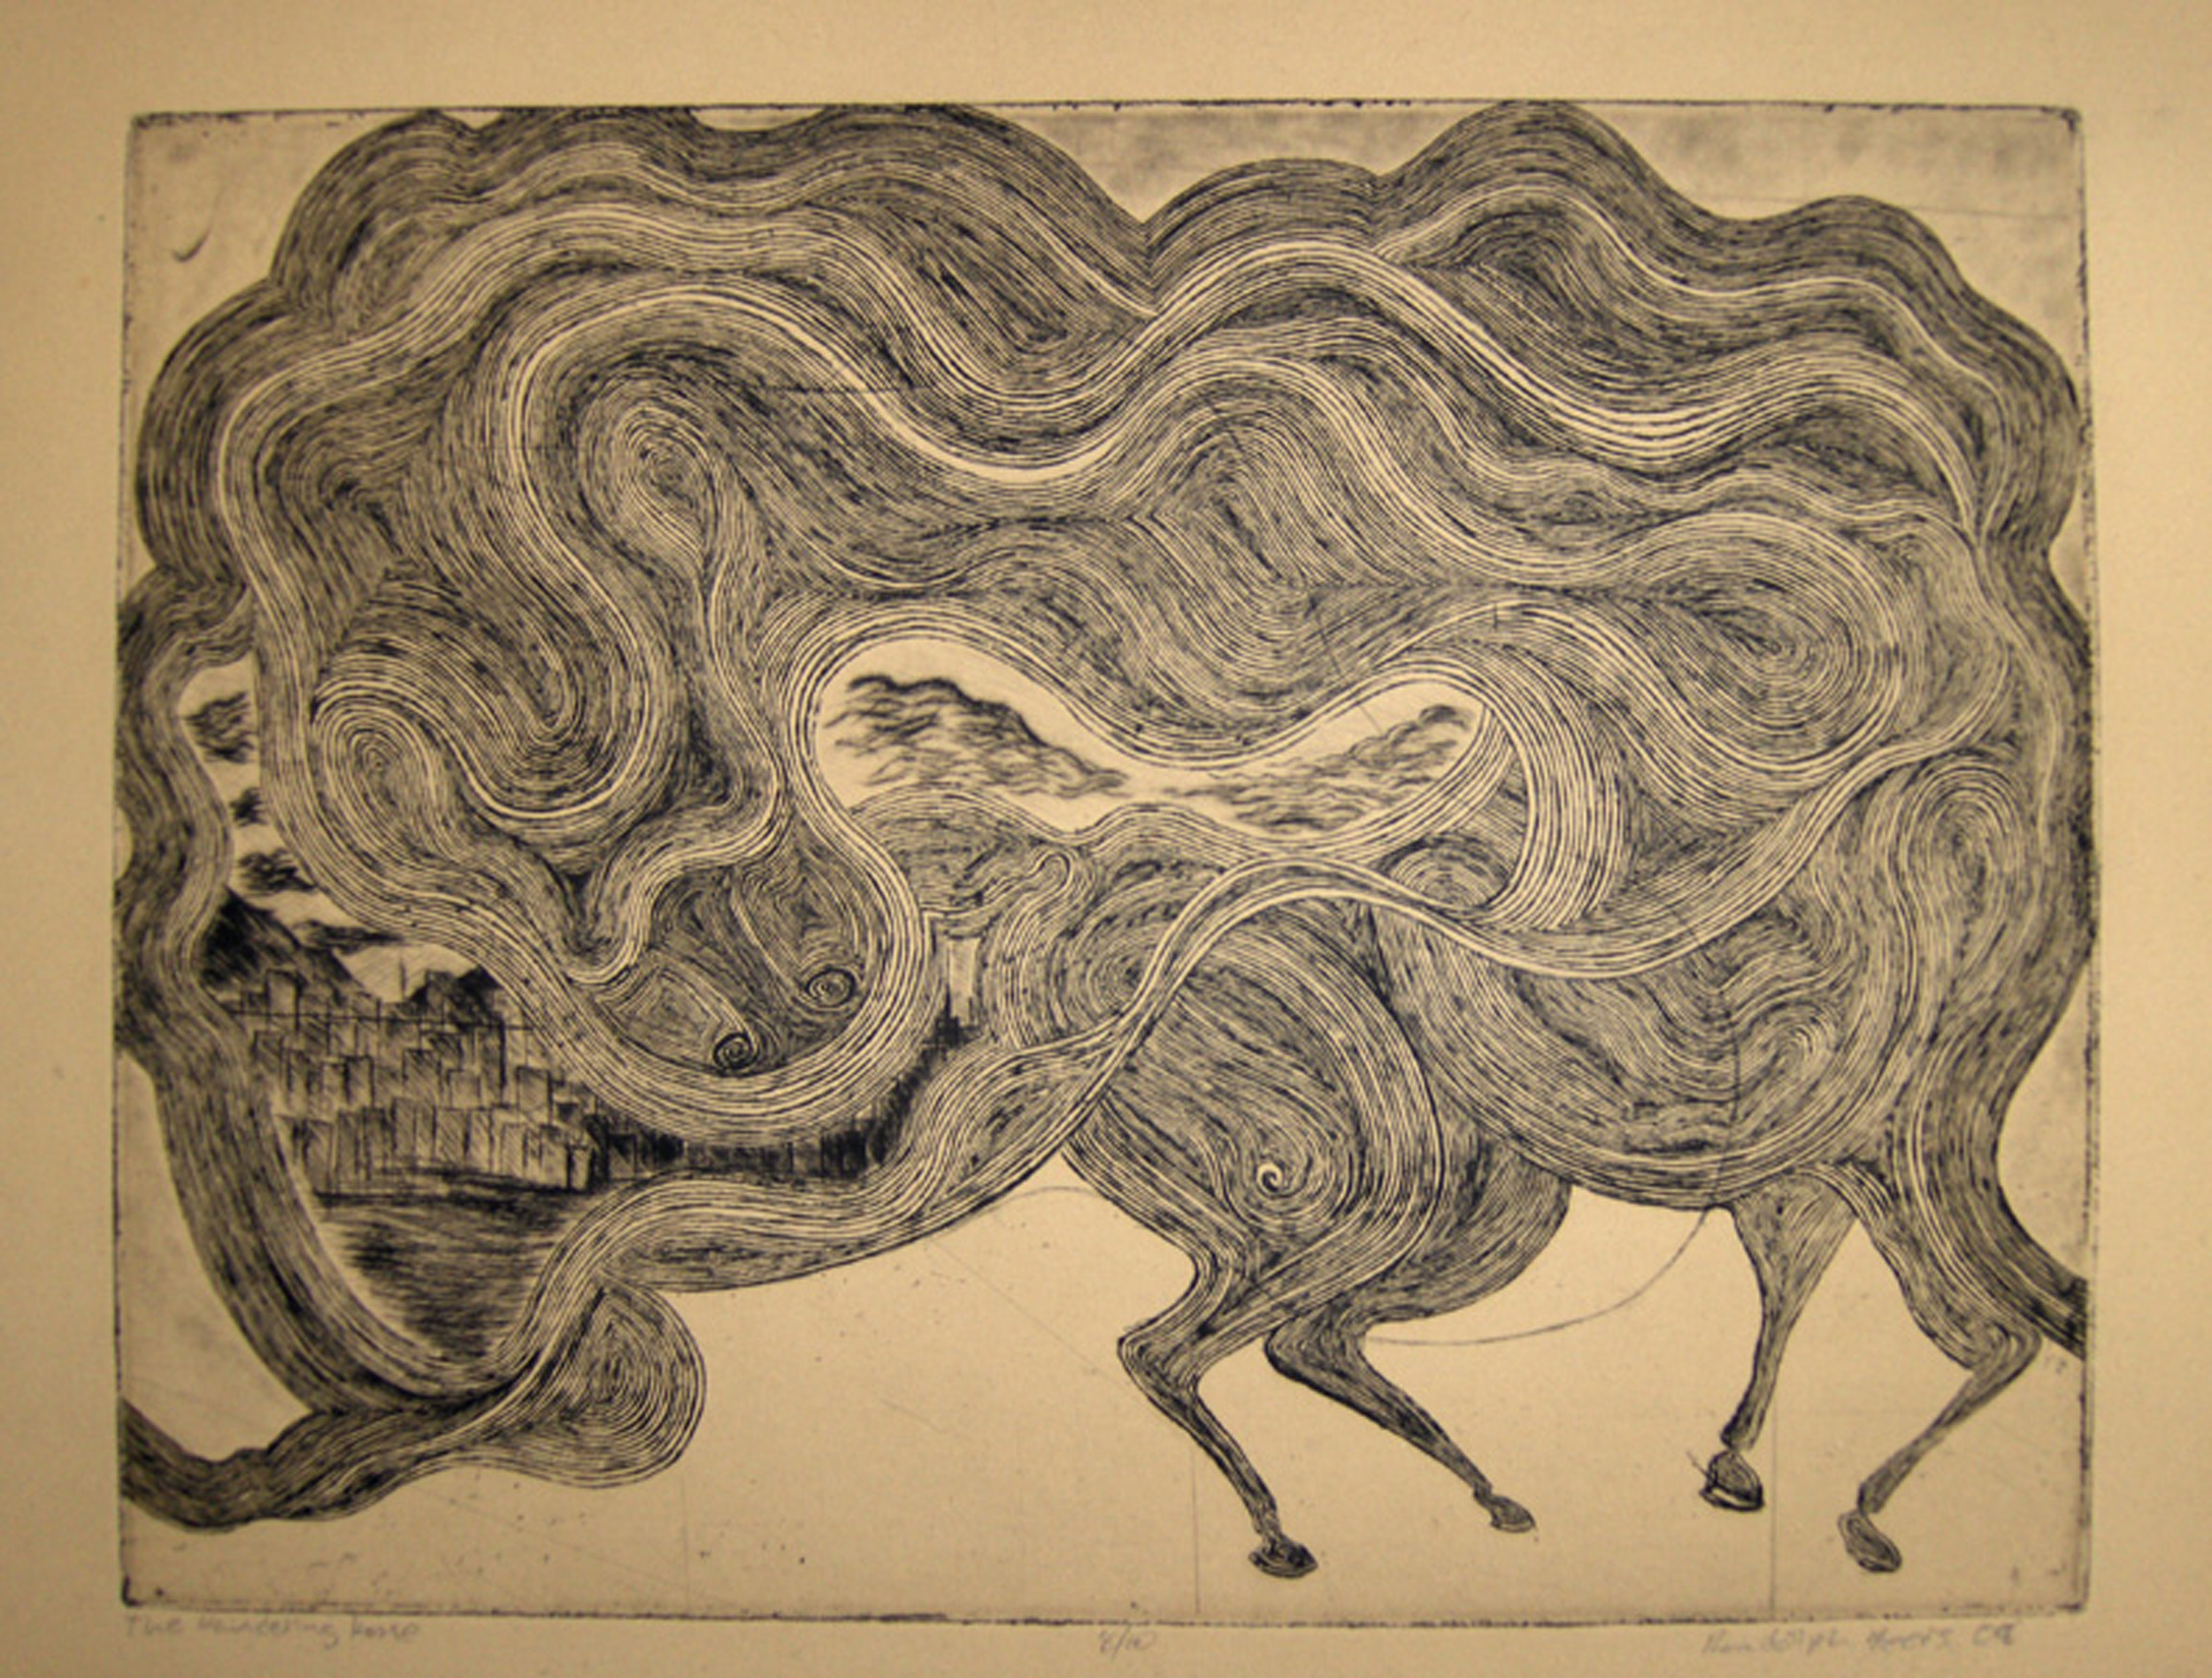 The Wandering Horse